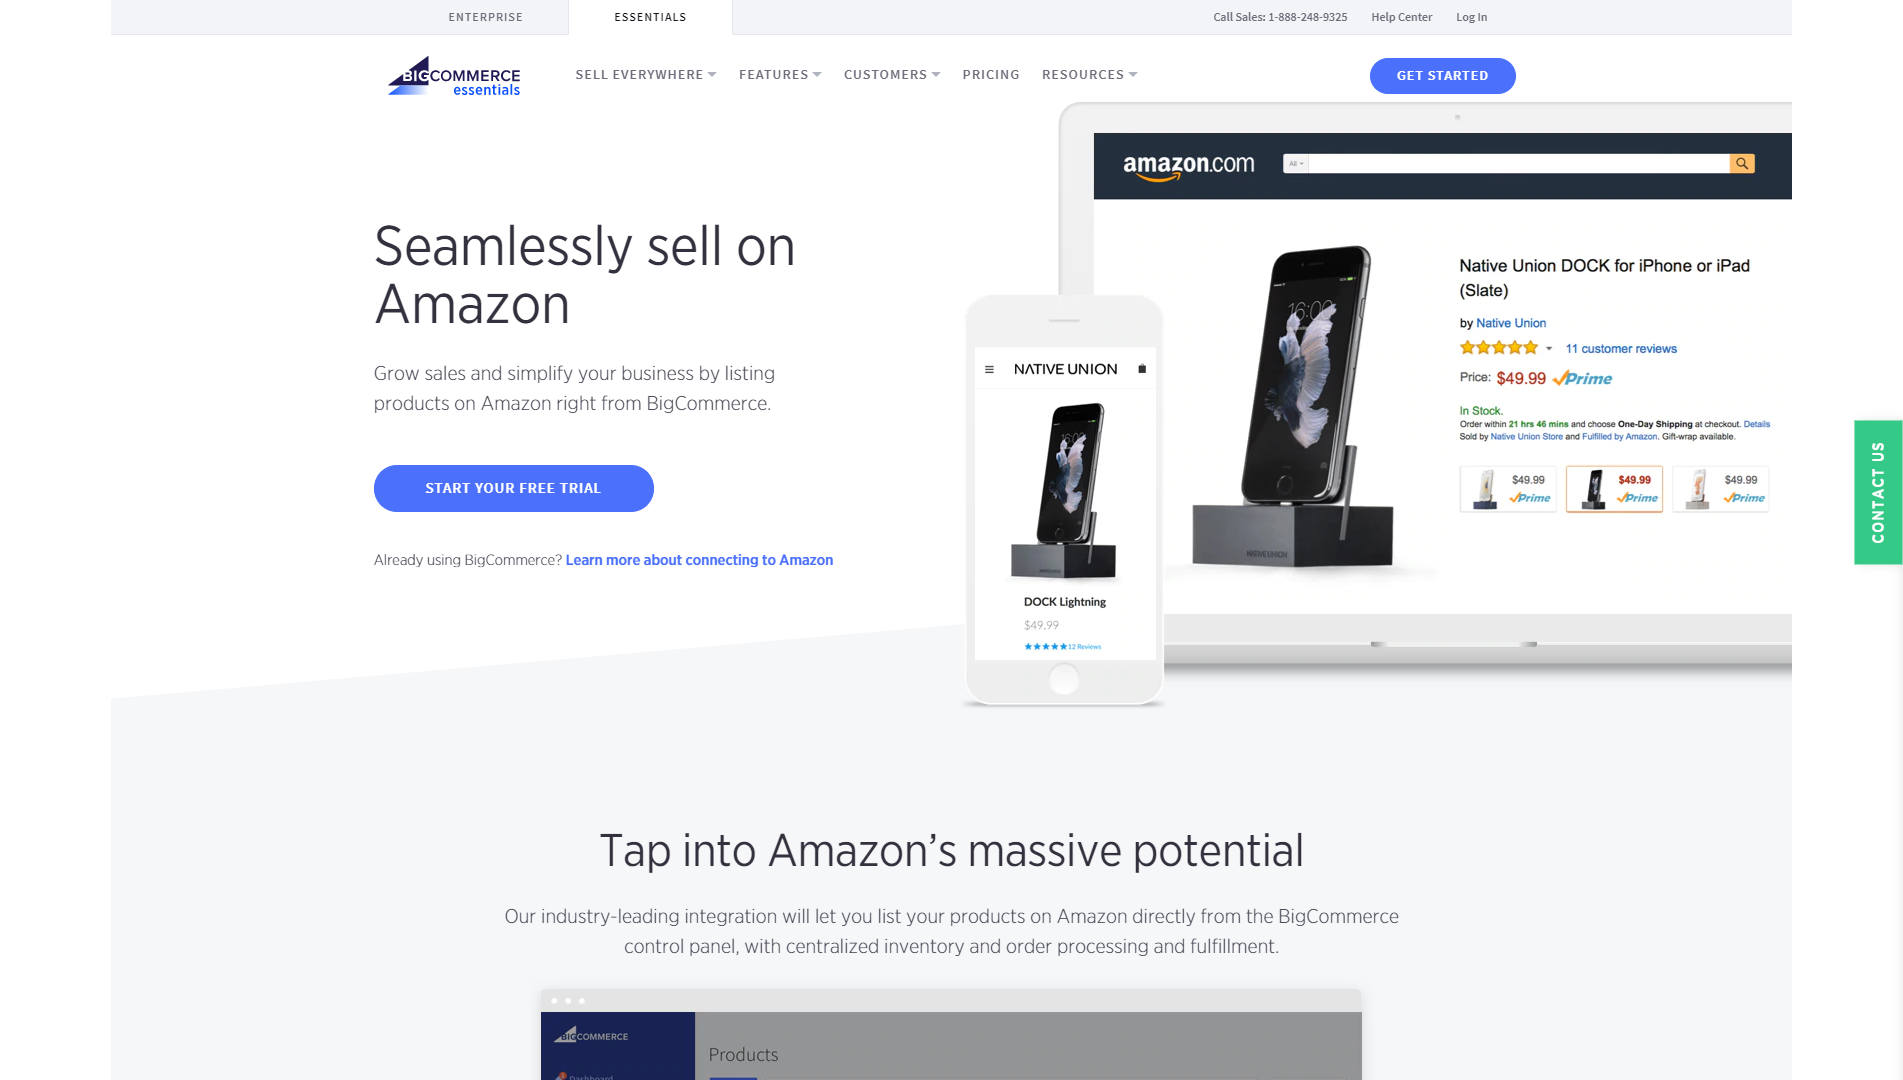 BigCommerce landing page screenshot